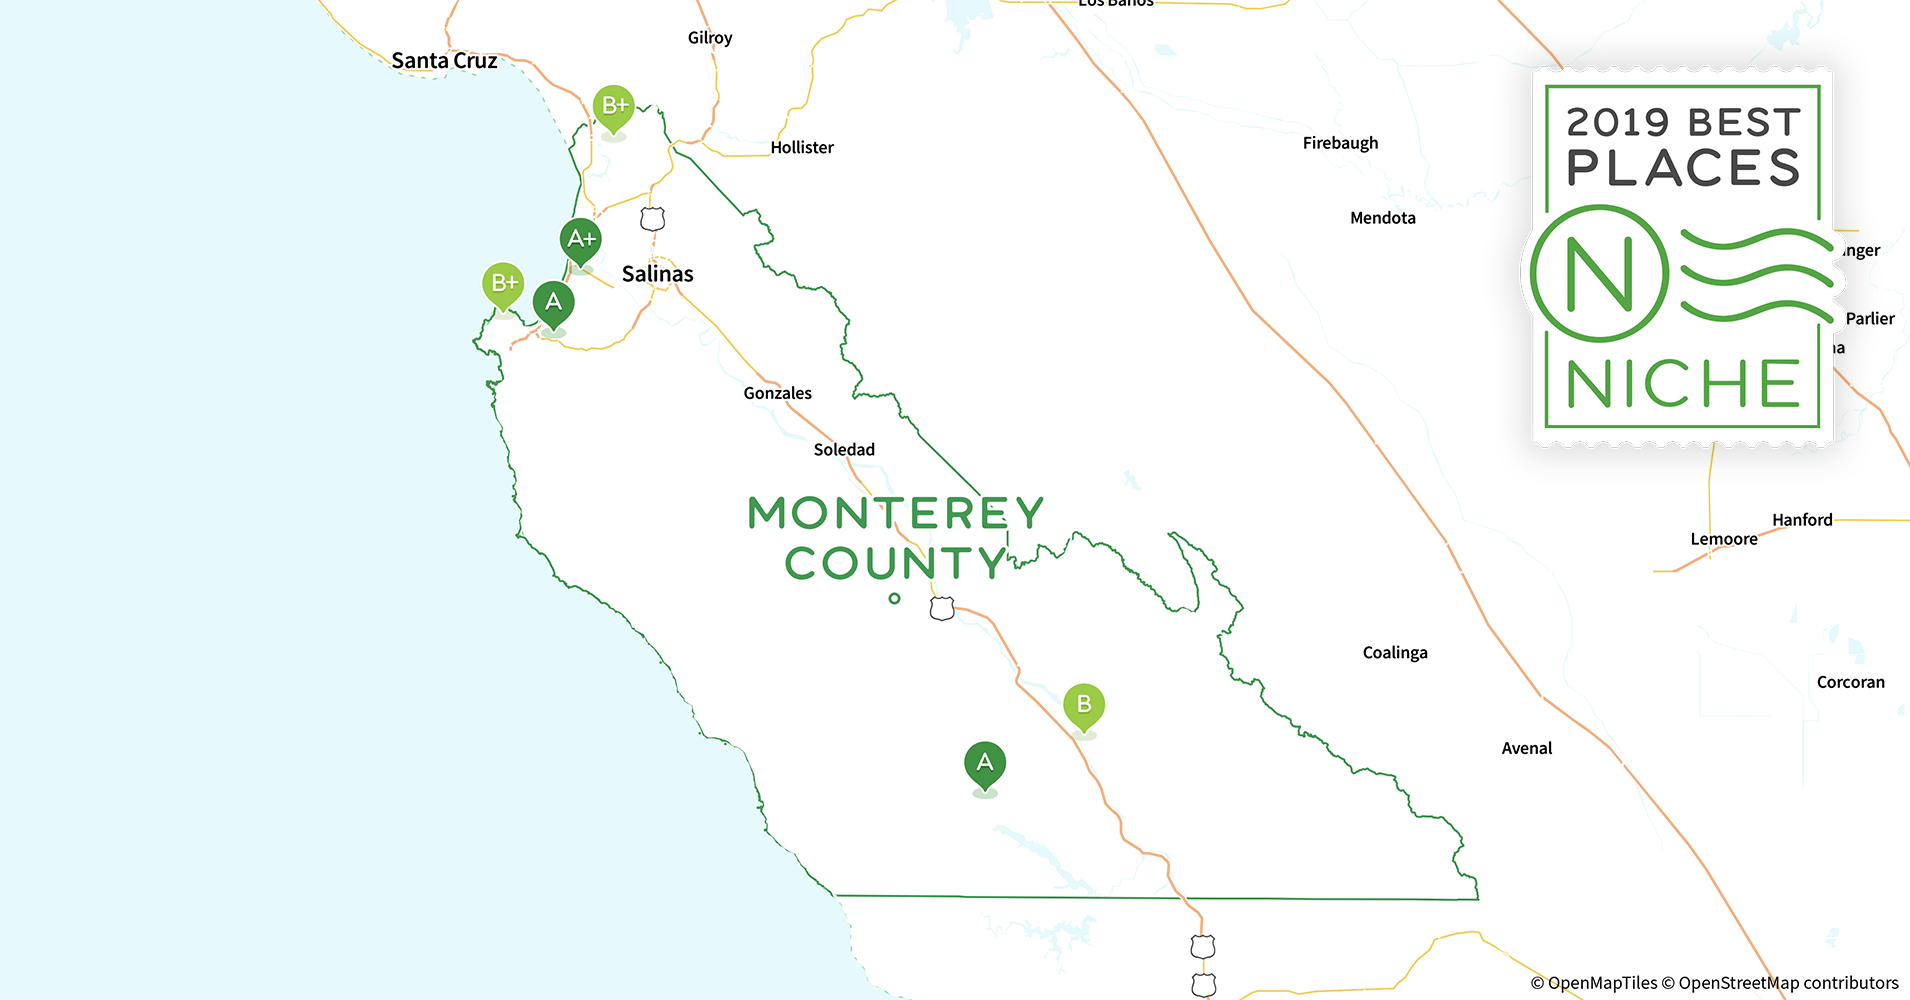 Monterey County California Map.2019 Best Places To Live In Monterey County Ca Niche